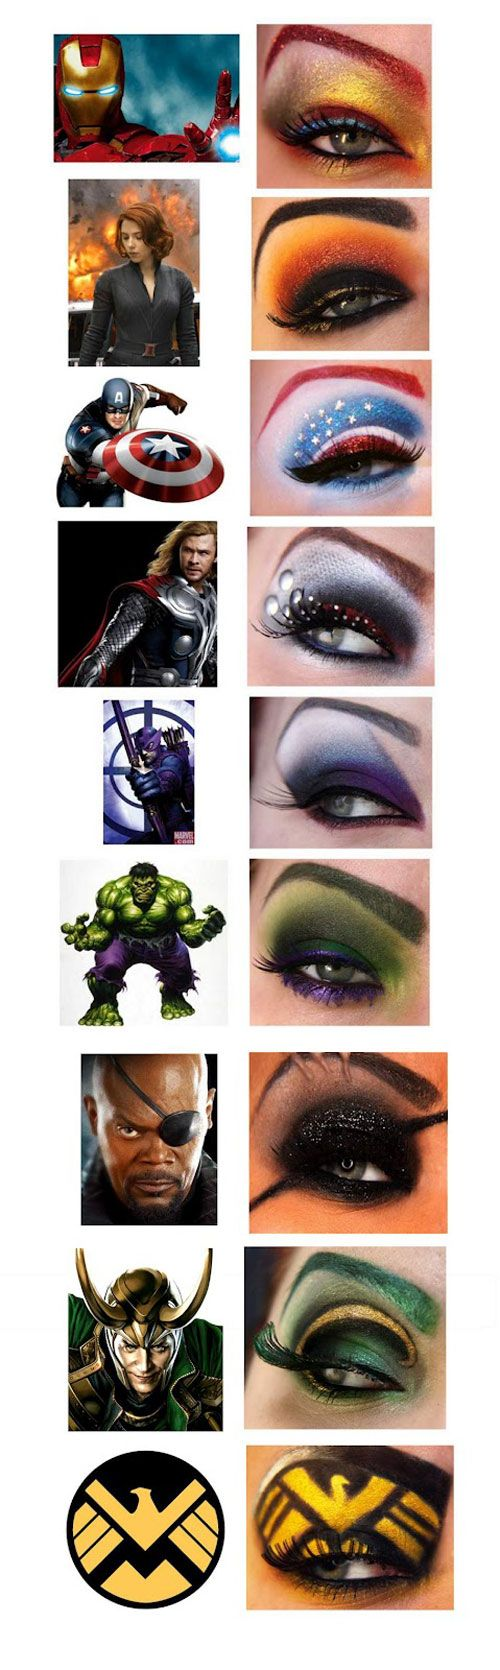 Marvel's The Avengers inspired eye makeup!  So cool....